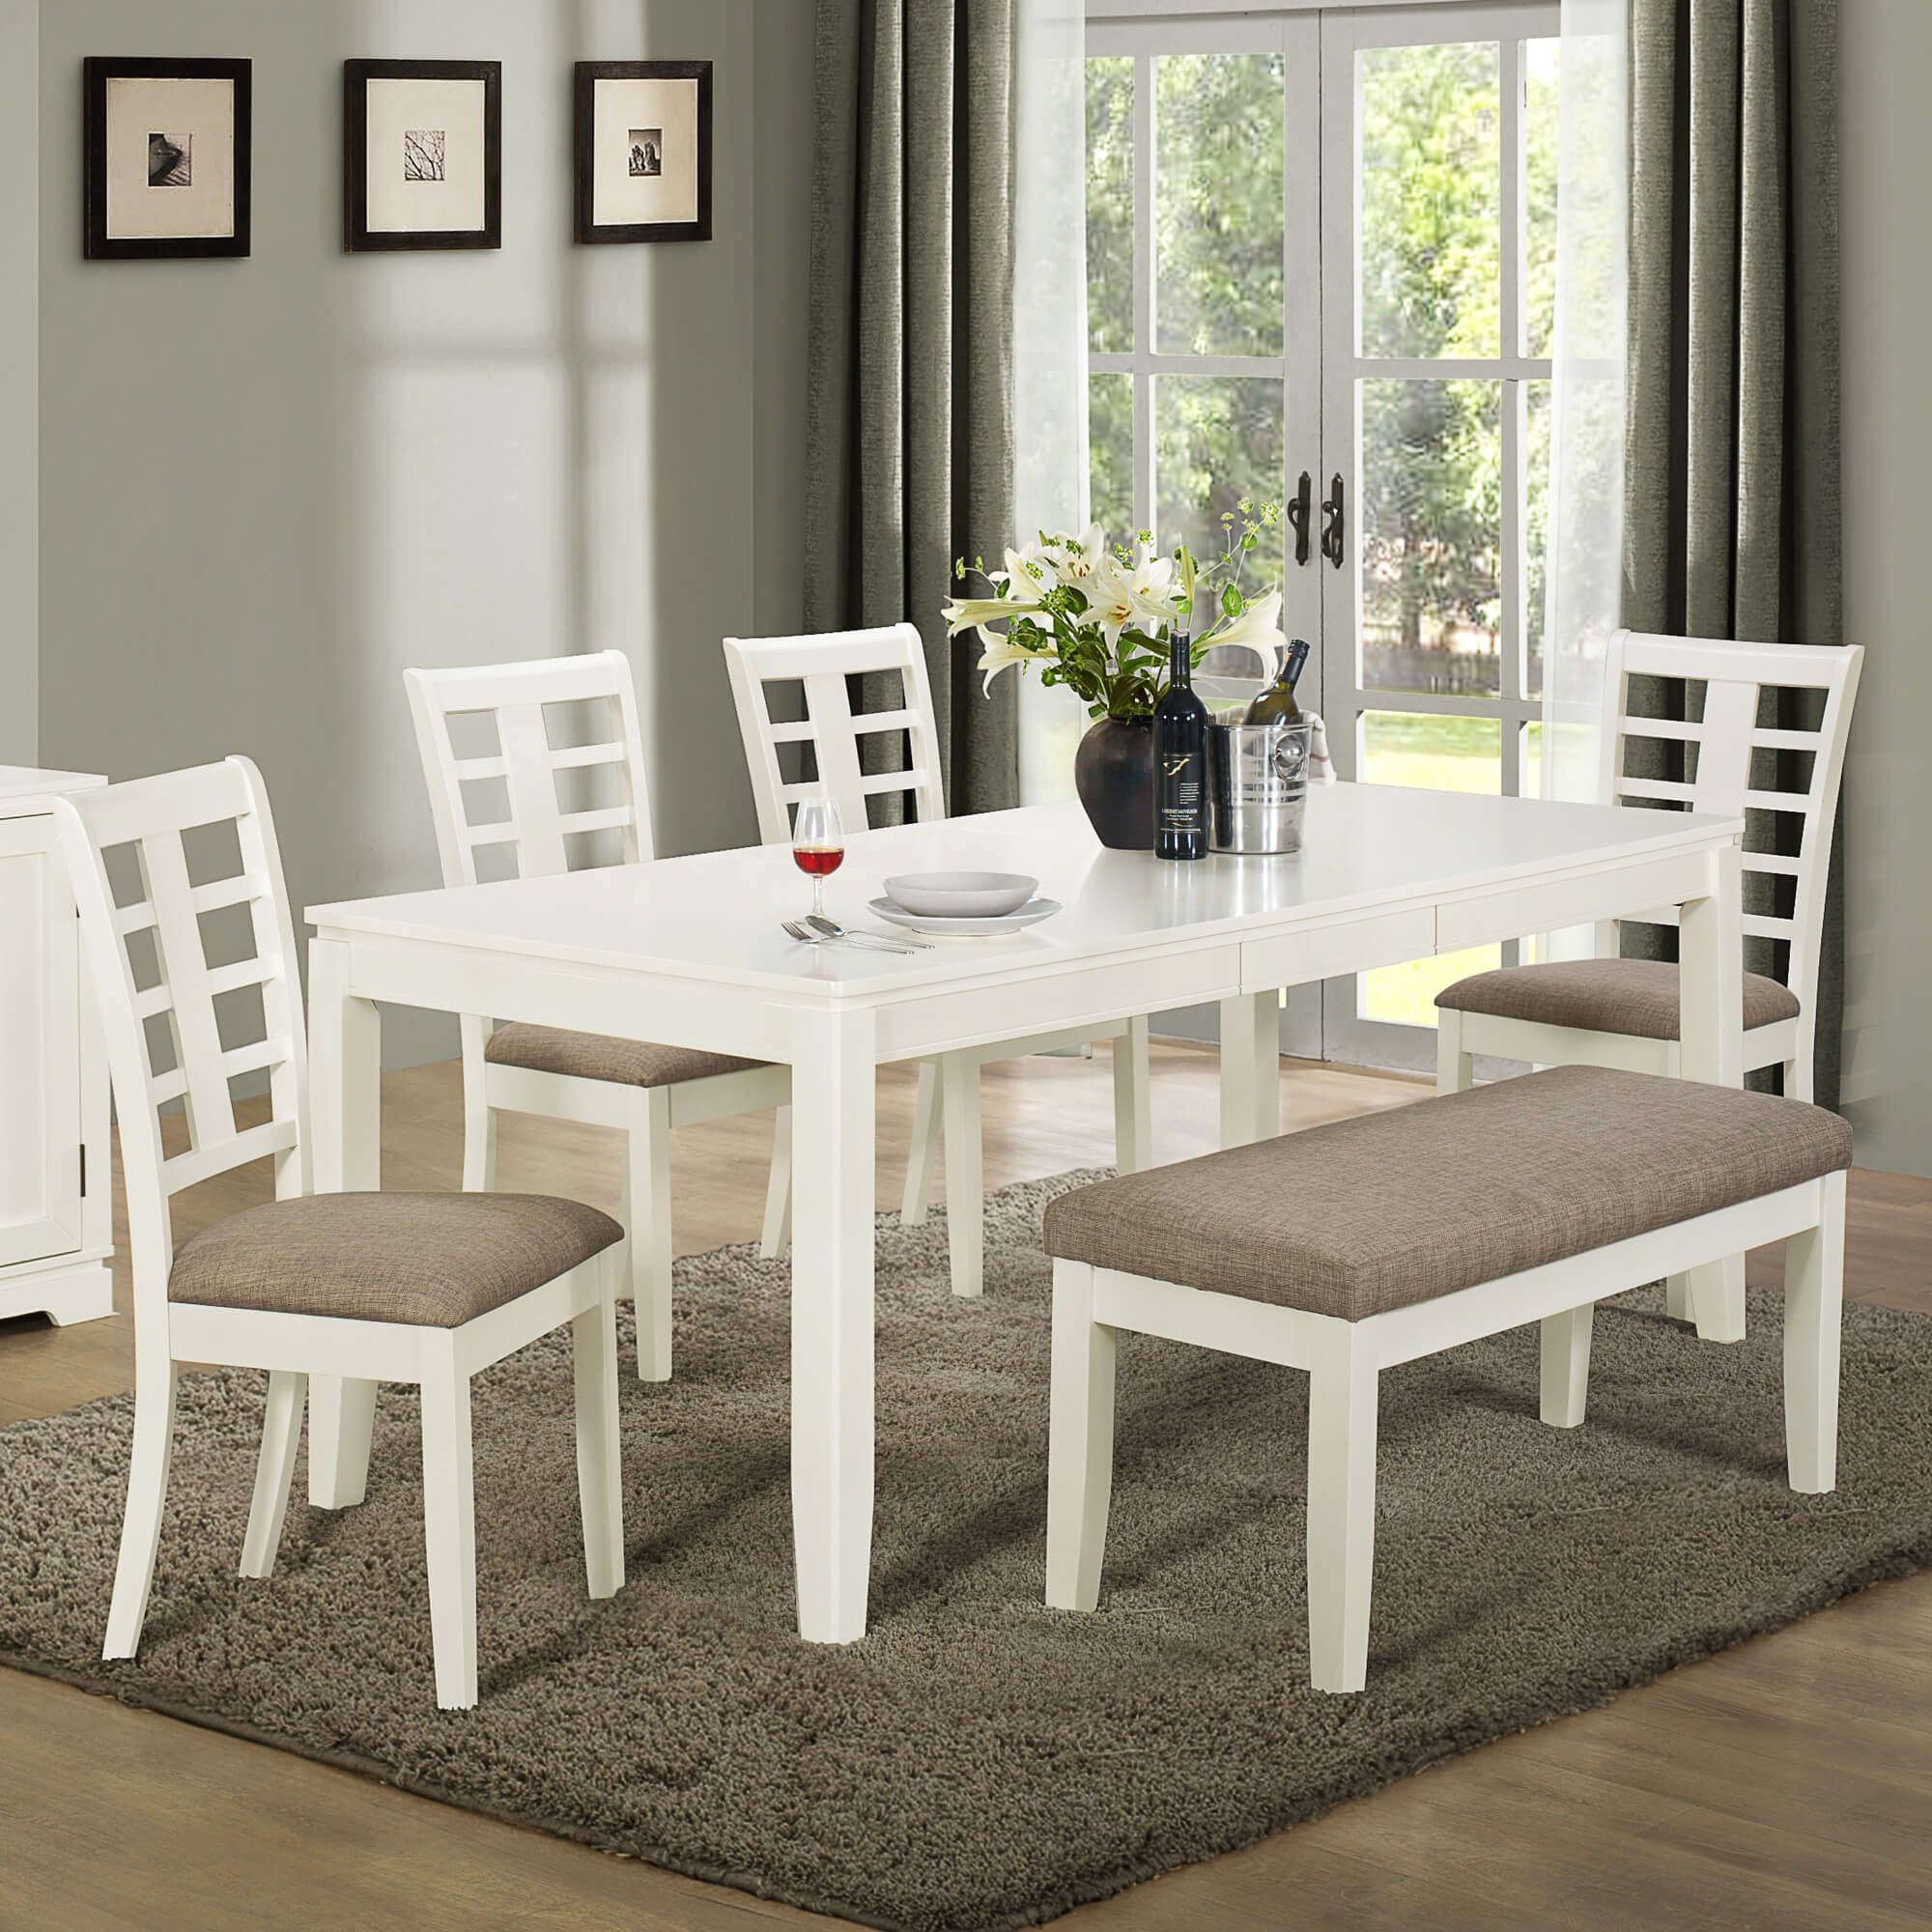 9 Dining Room Sets Big and Small with Bench Seating 9 ...